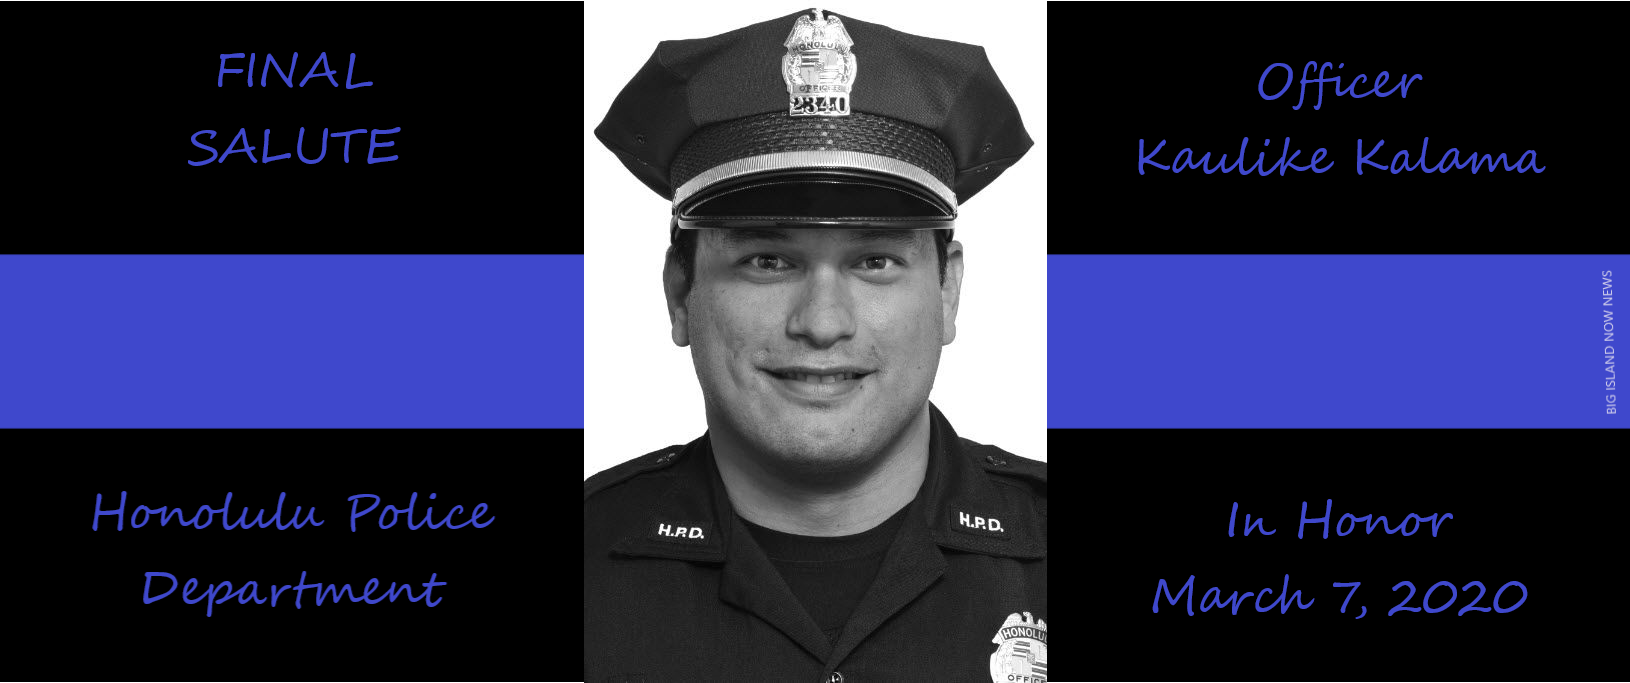 FINAL SALUTE TO OFFICER Kaulike Kalama